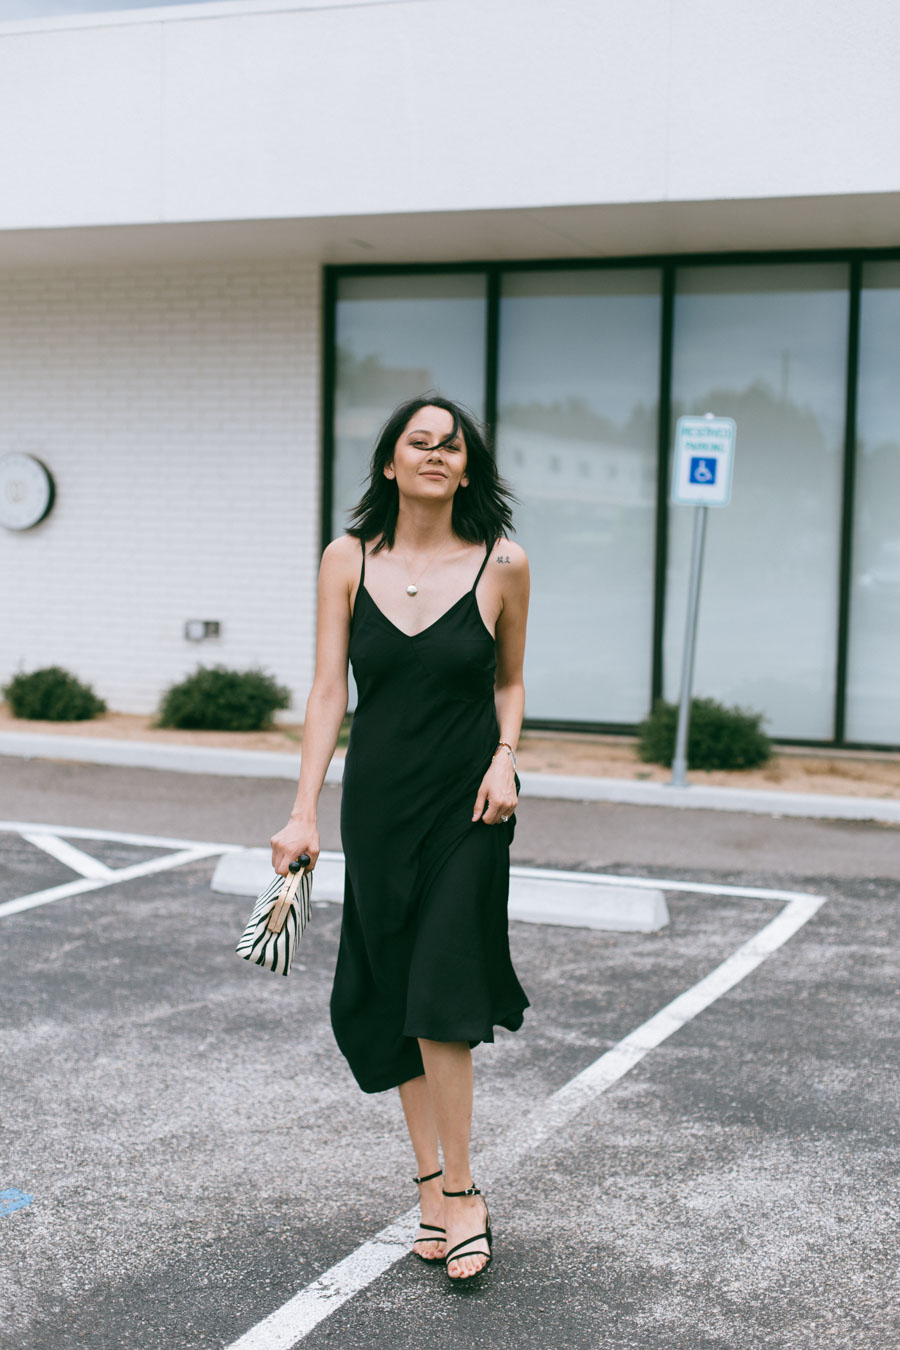 How To Wear A Black Slip Dress: Day to Night